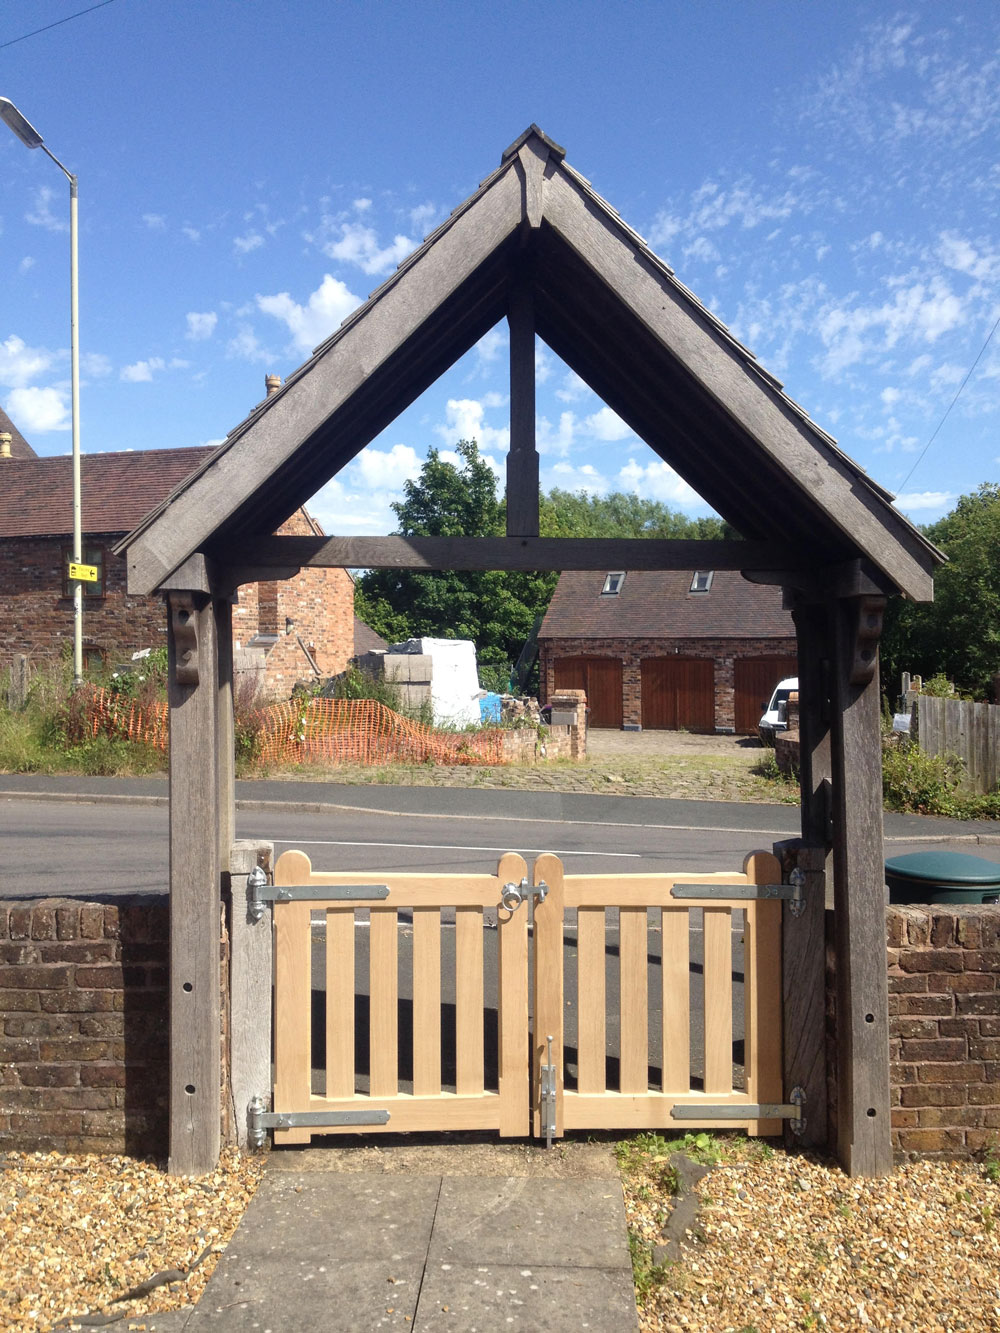 Gates for Little Dawley Memorial Garden